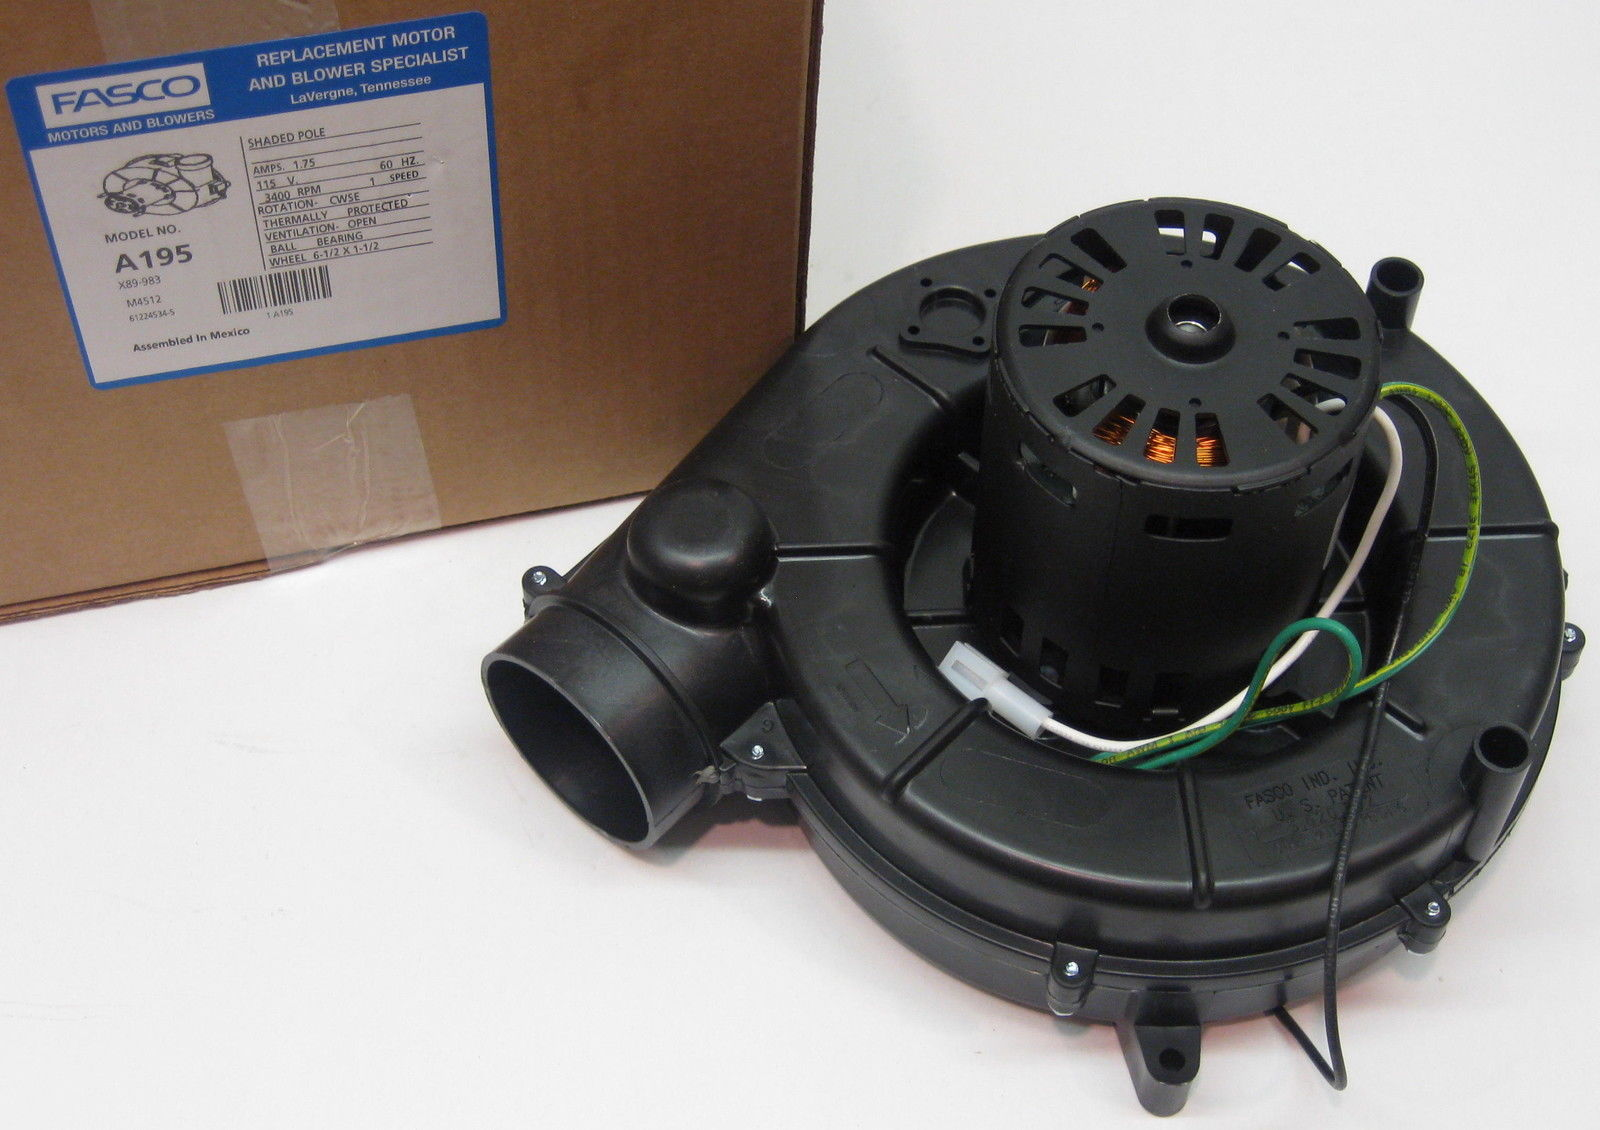 A195 fasco furnace draft inducer blower motor fits trane for Trane blower motor replacement